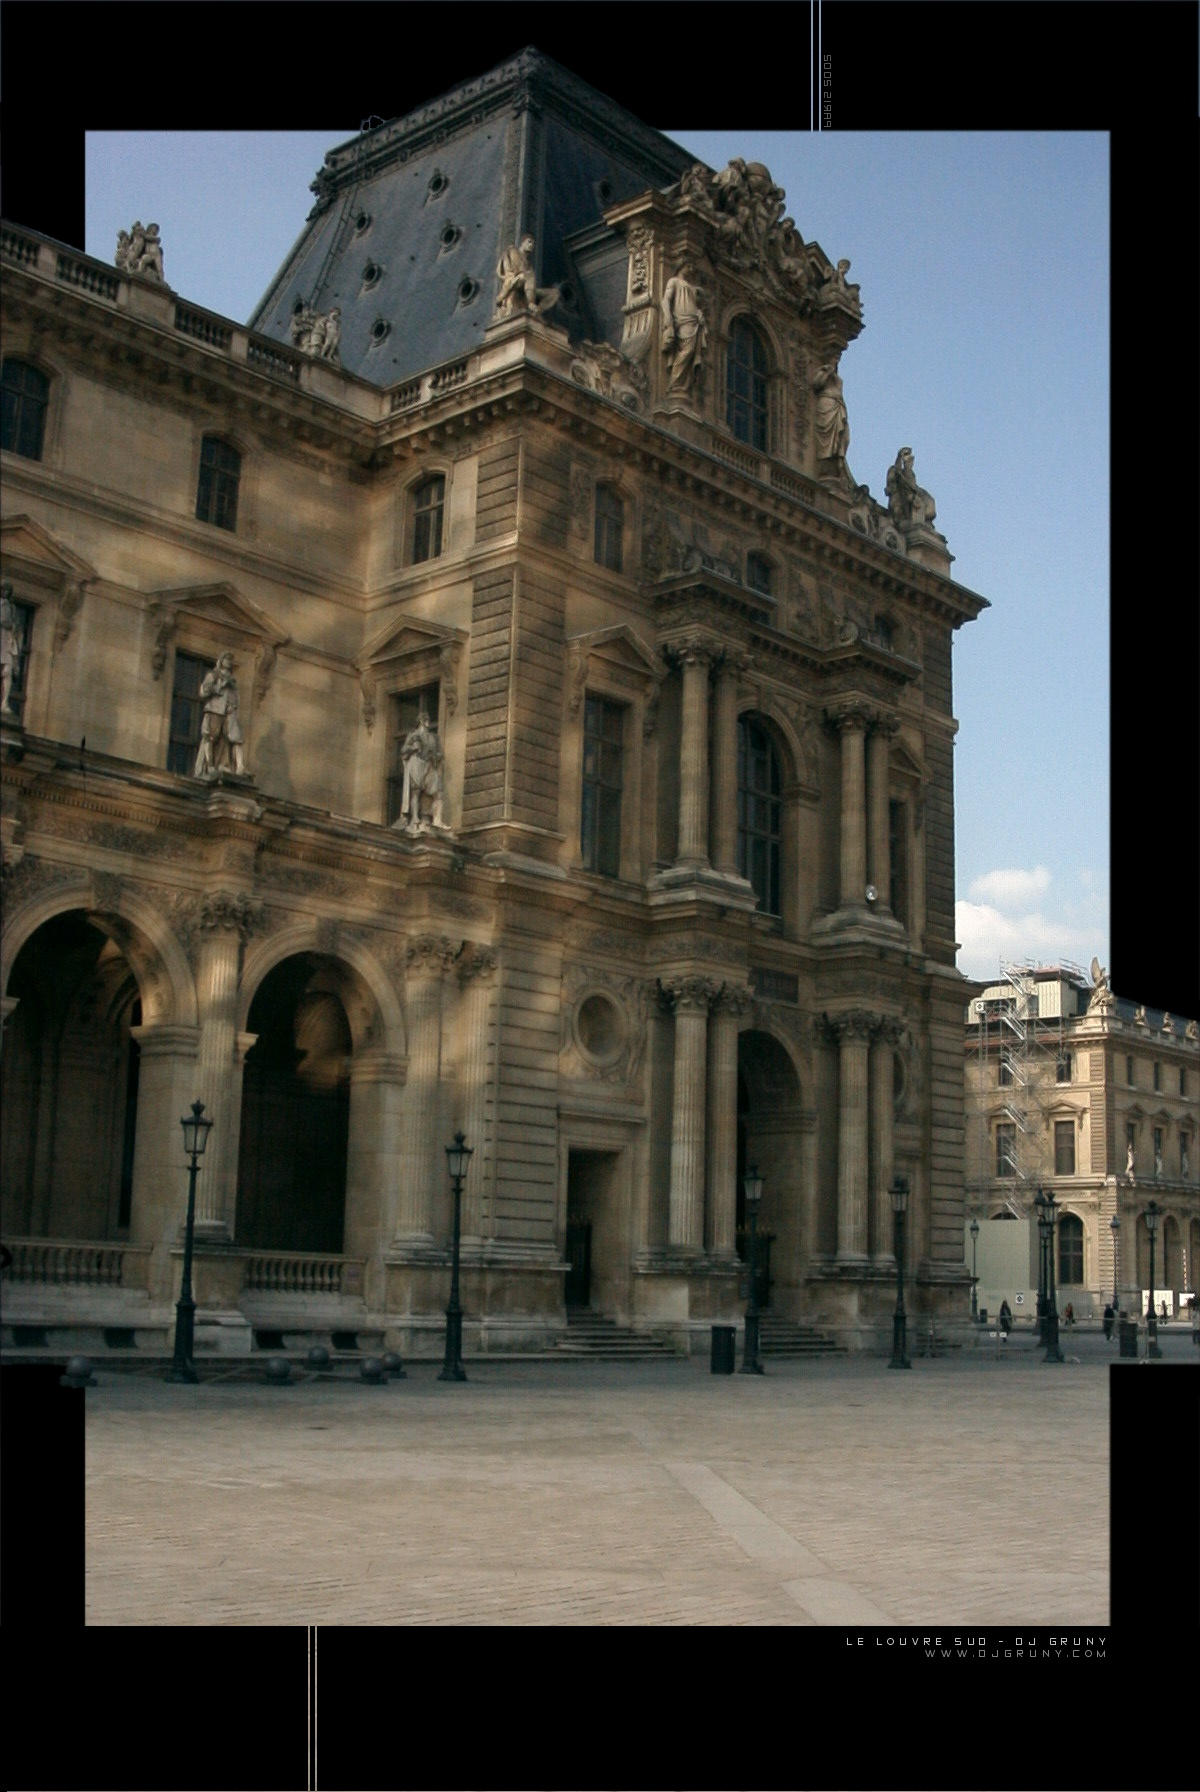 Le Louvre Sud by djgruny